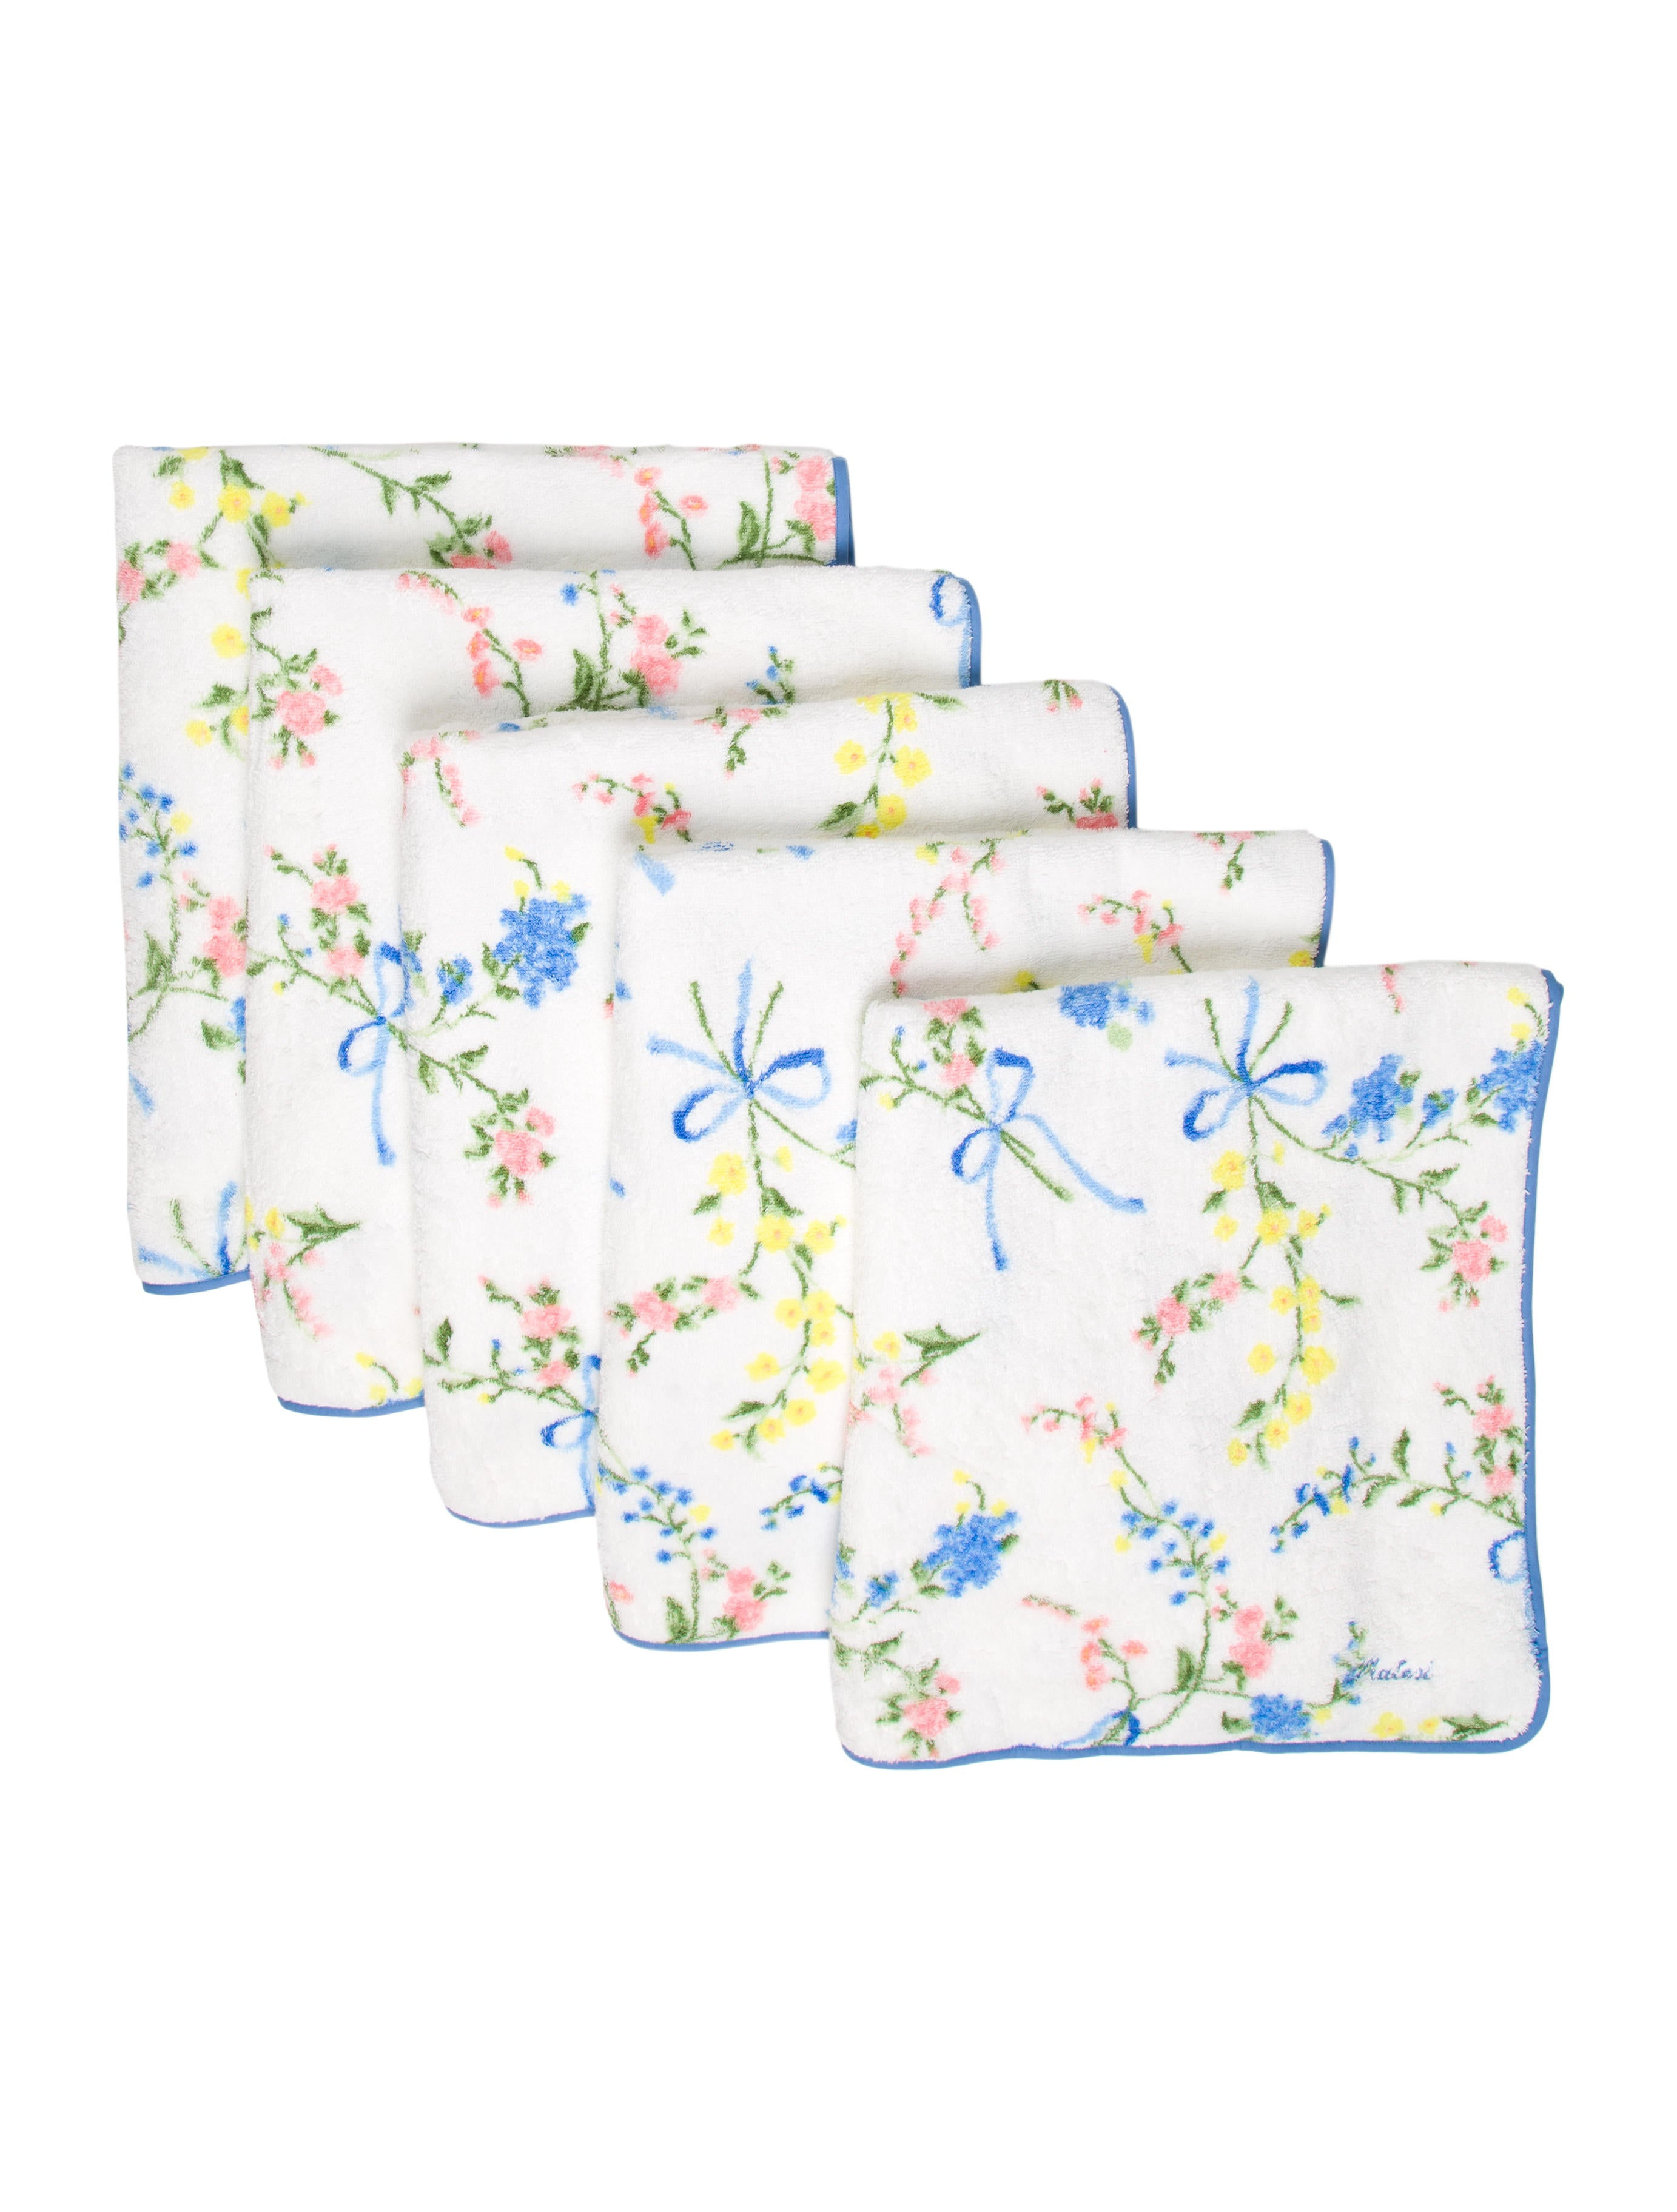 Pratesi Floral Bath Towels W Tags Bedding And Bath Prate20027 The Realreal